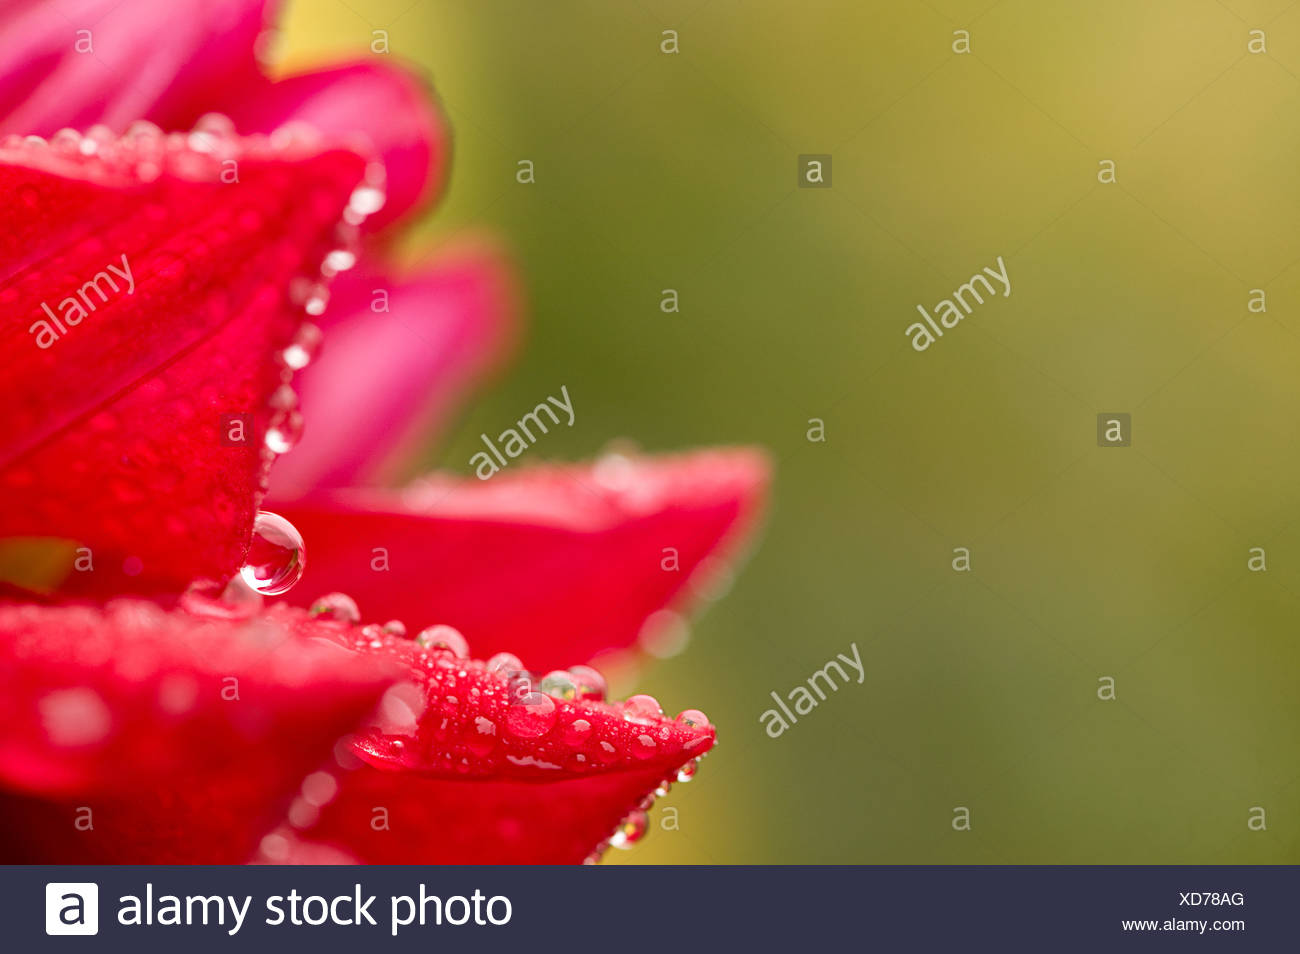 Flower with dewdrops - Stock Image